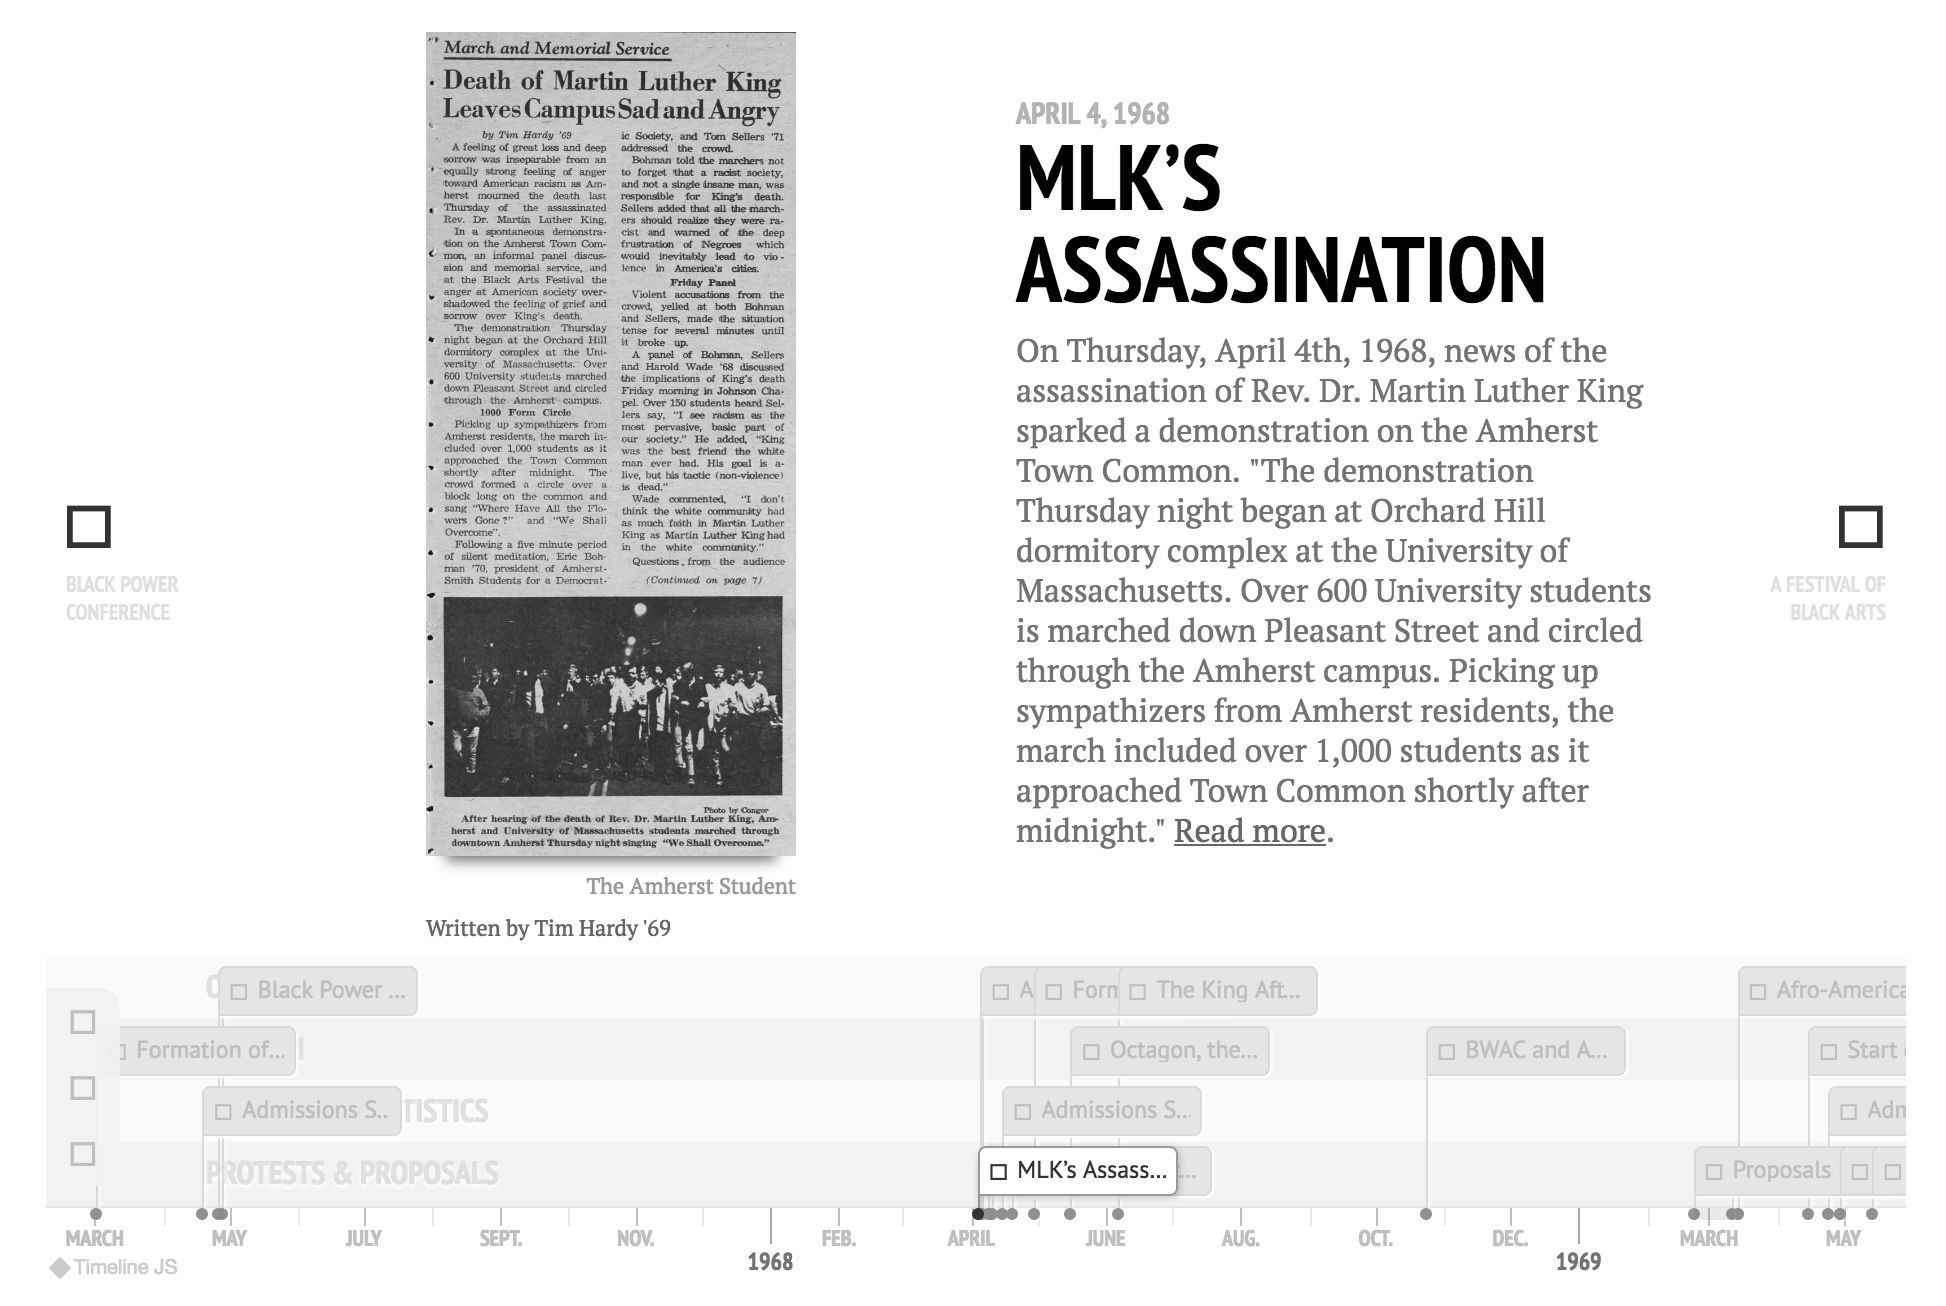 Timeline example 3